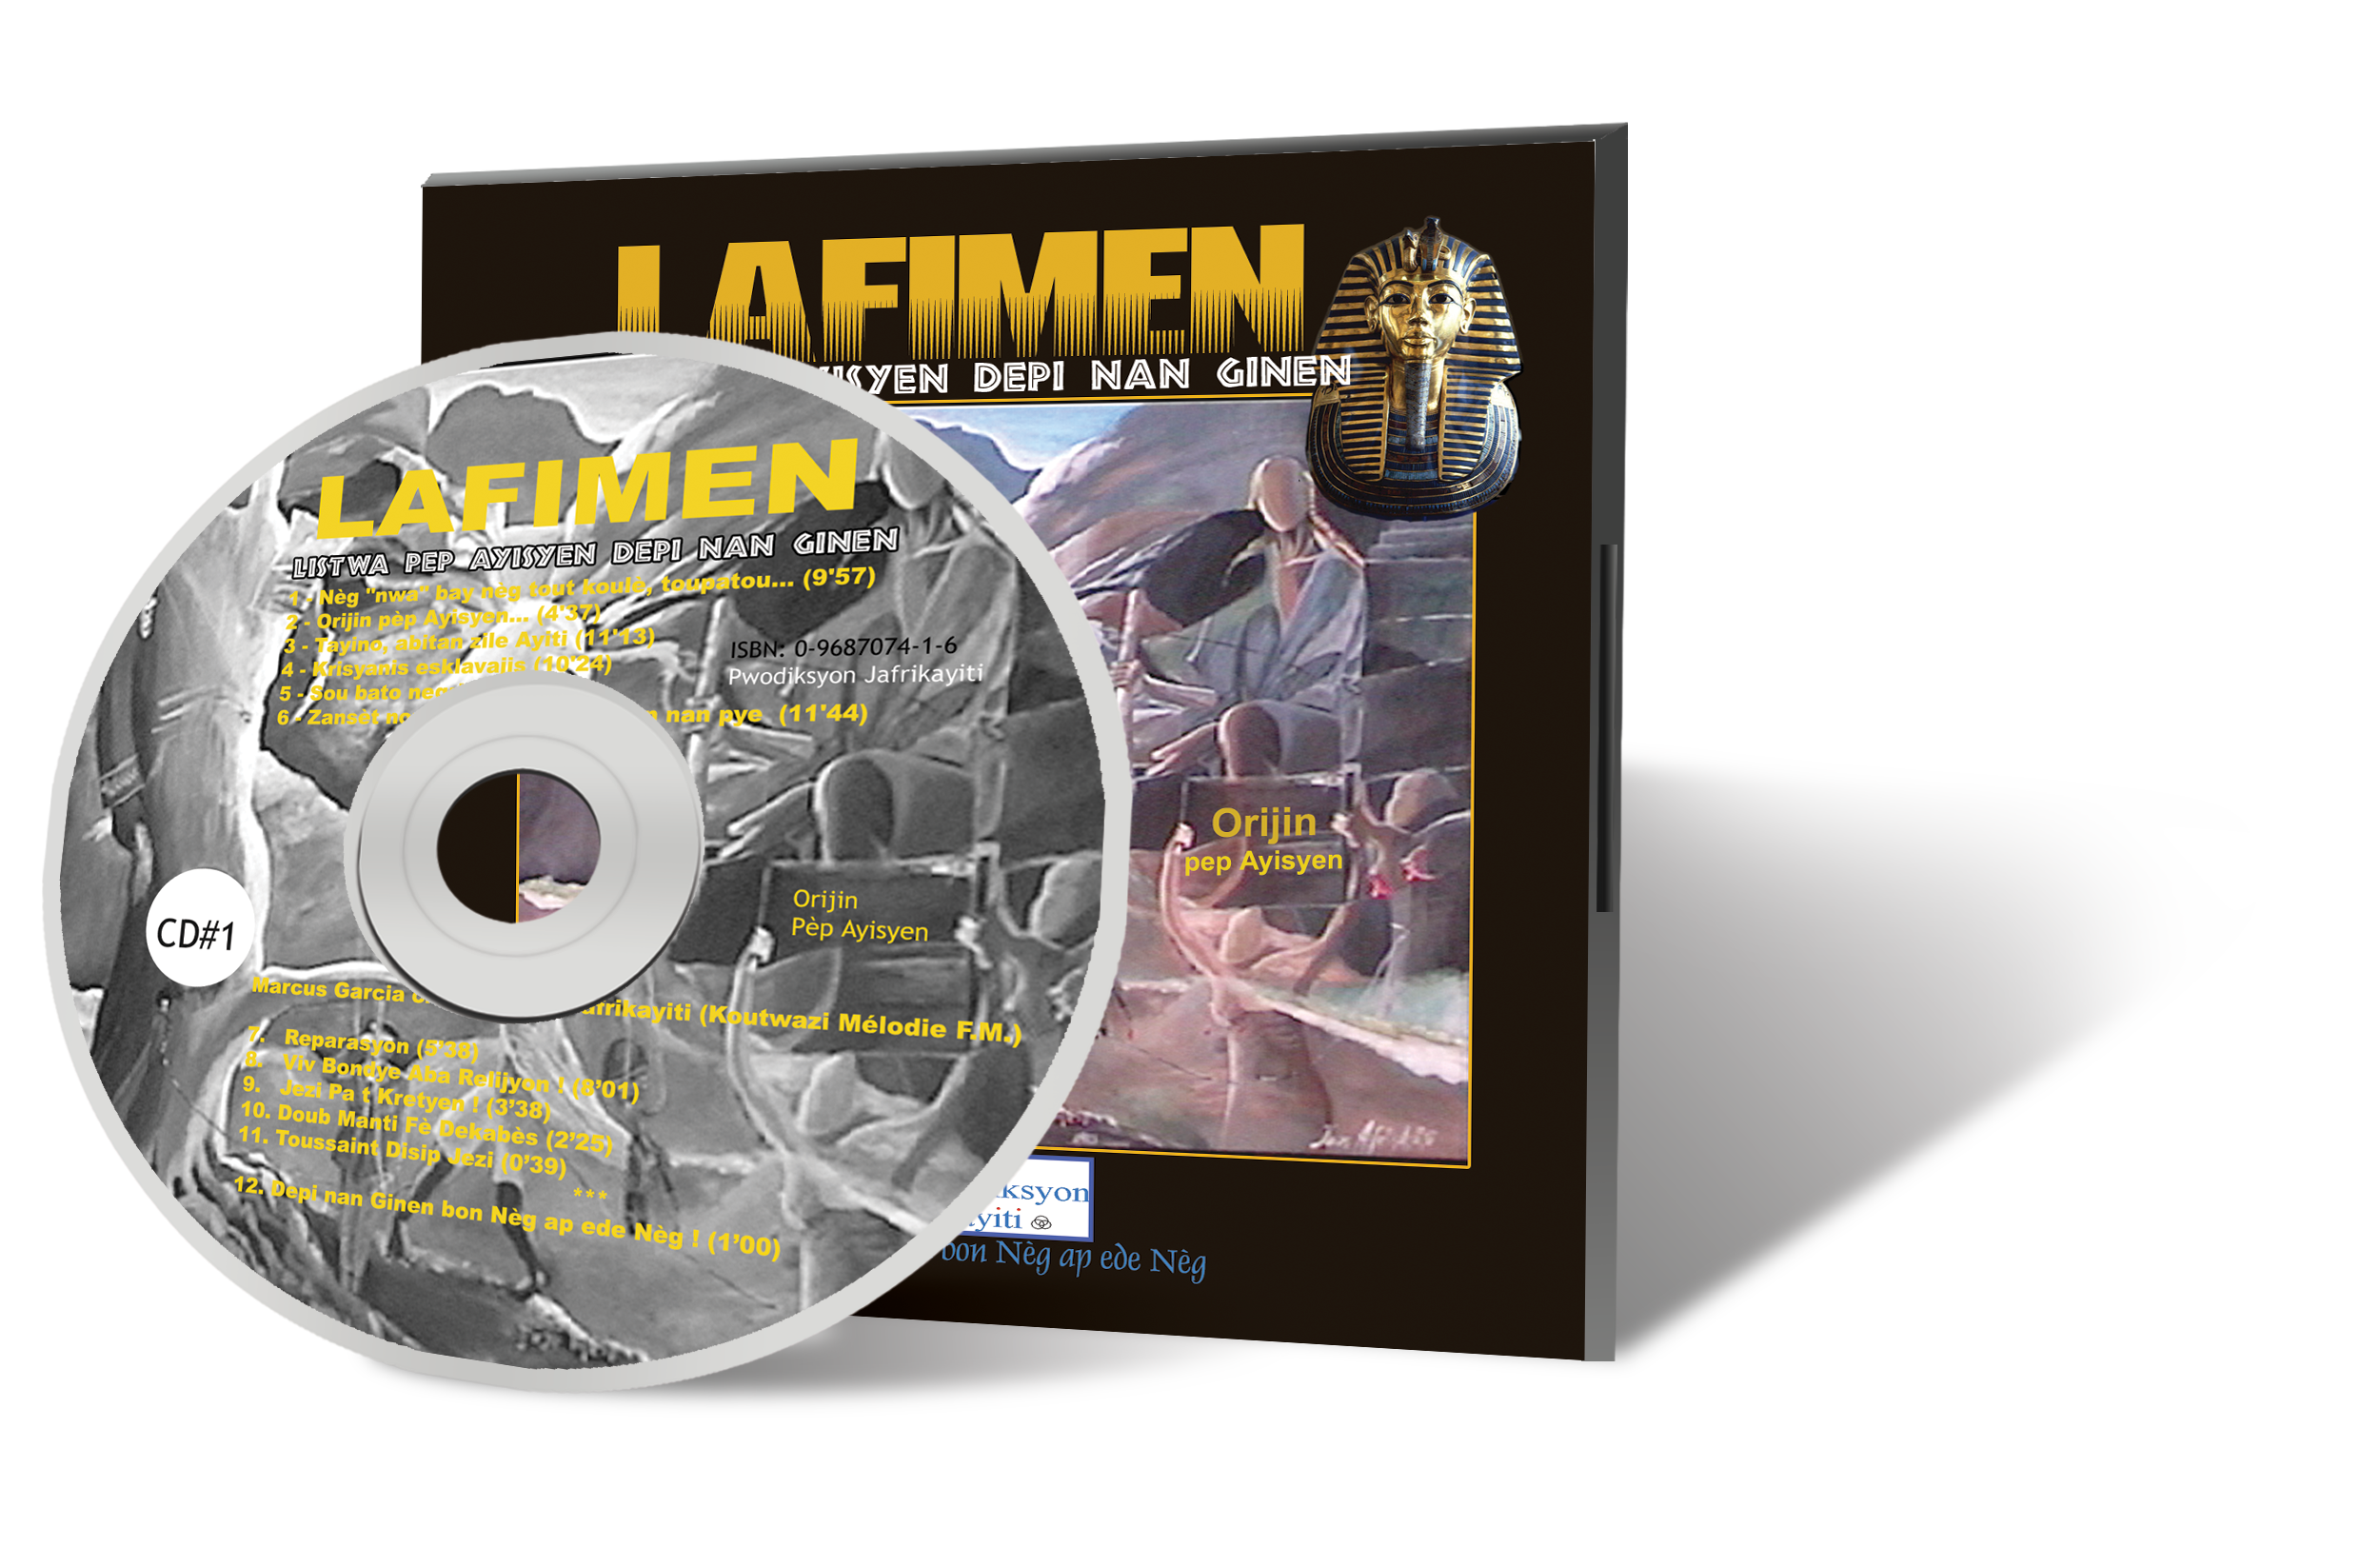 Lafimen-CD-1-cover-mockup-template